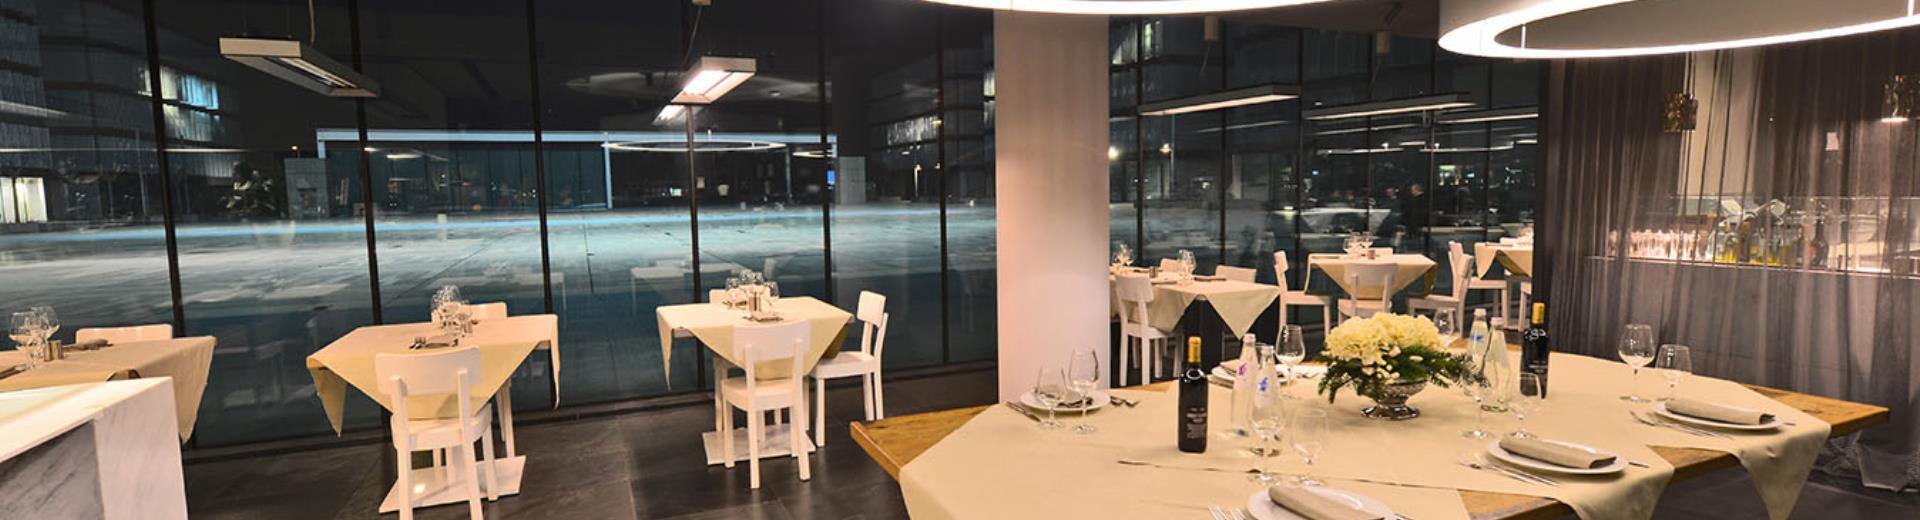 Discover the flavours of traditional local cuisine together with the best Italian and international cuisine: all this at BW Plus Net Tower Hotel in Padova!